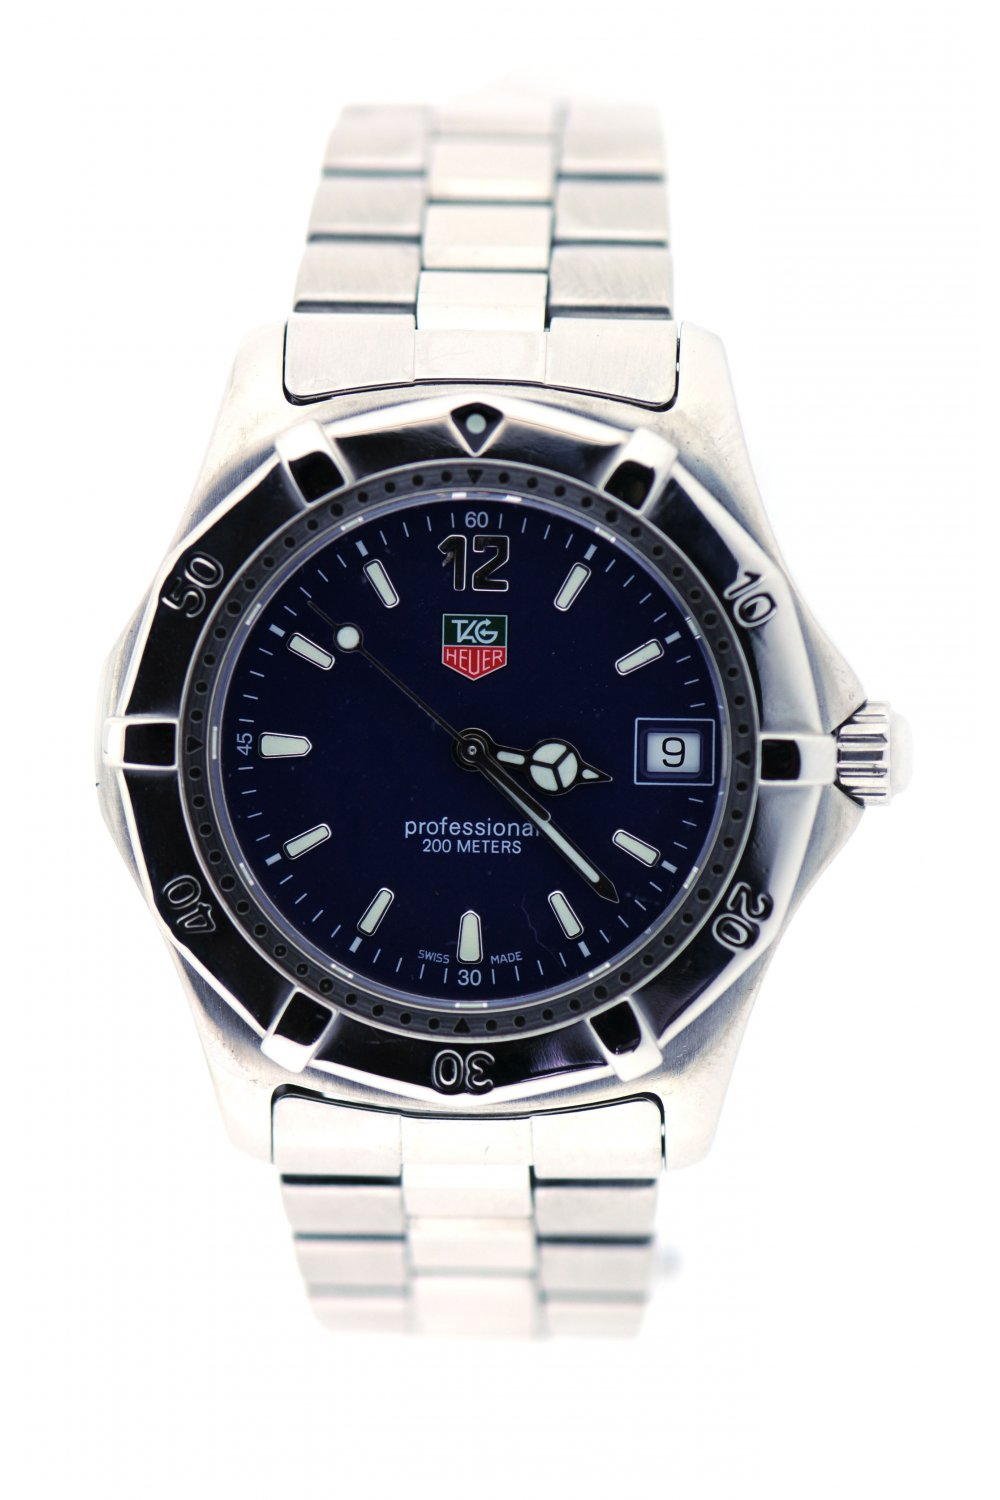 tag heuer second tag heuer professional mens